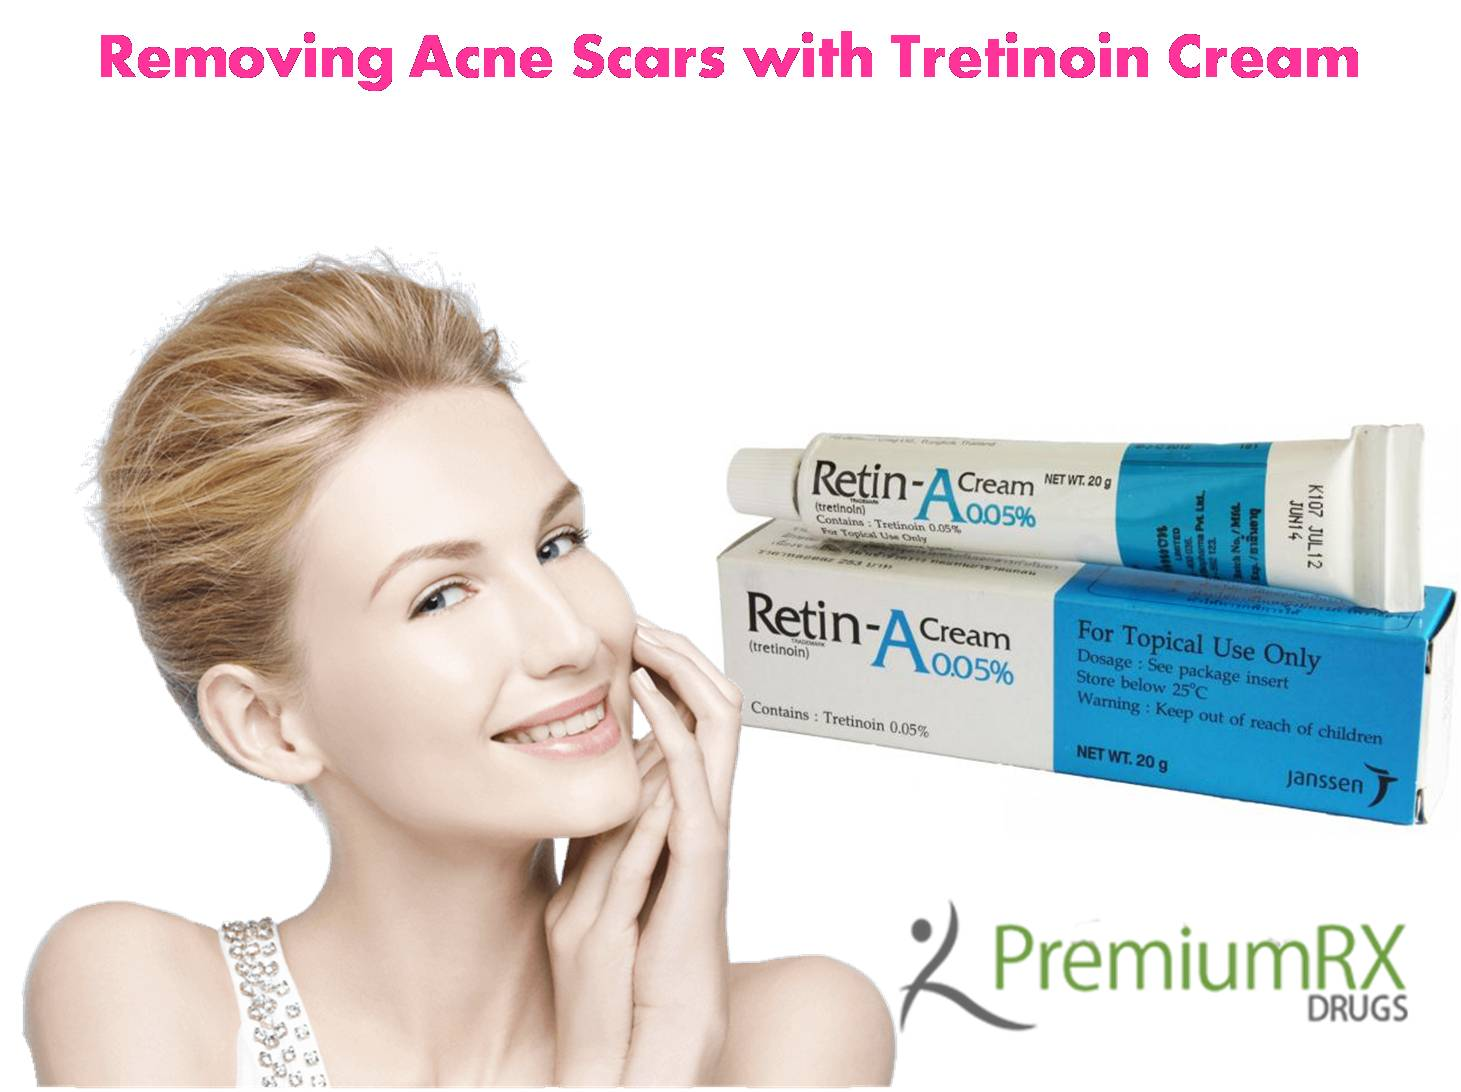 Removing Acne Scars With Tretinoin Cream Premiumrxdrugs Online